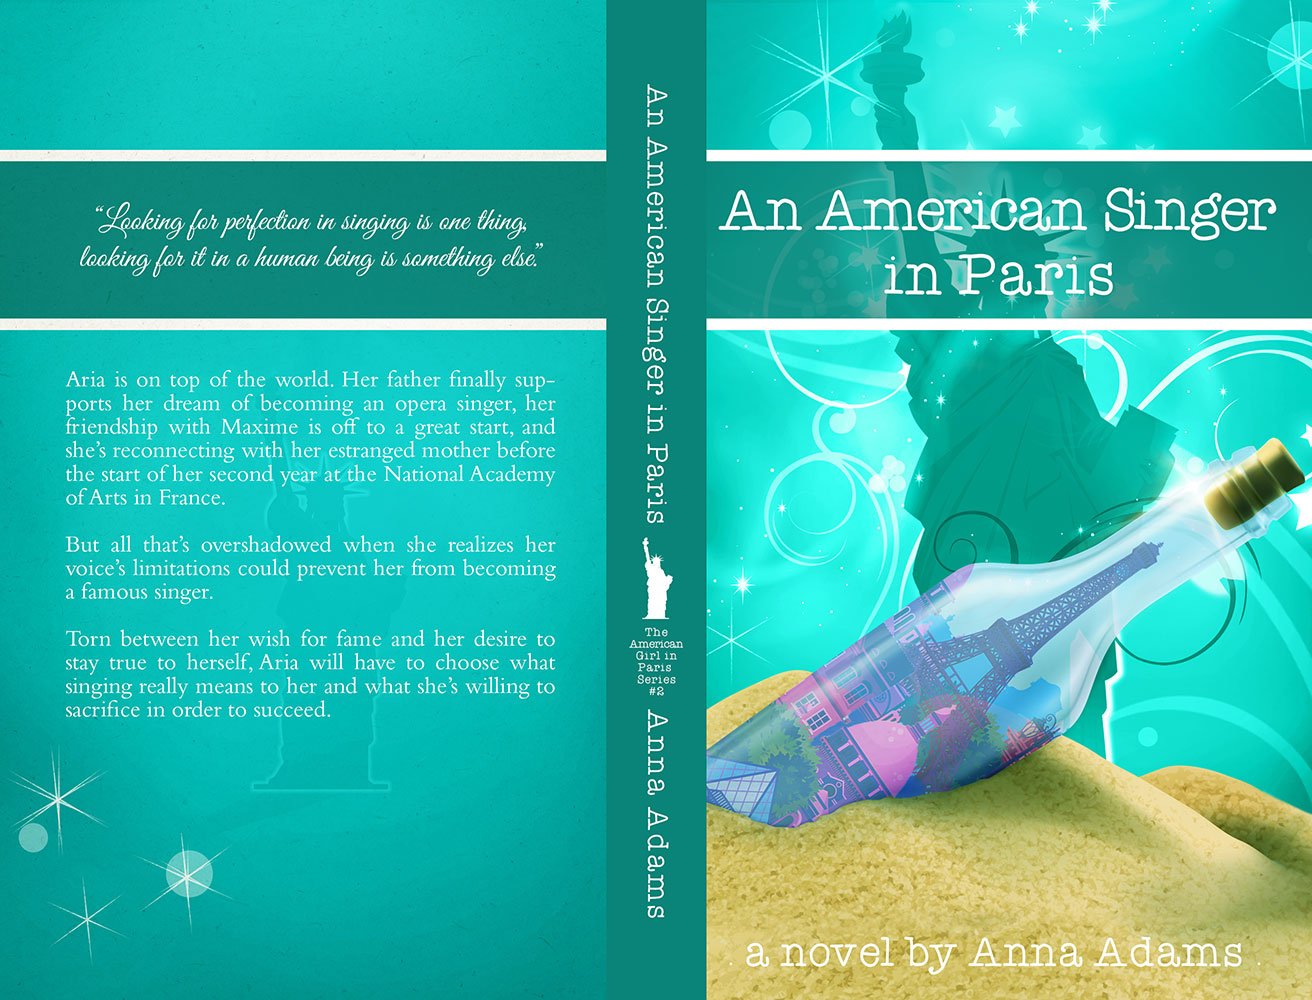 An American Singer in Paris by Anna Adams